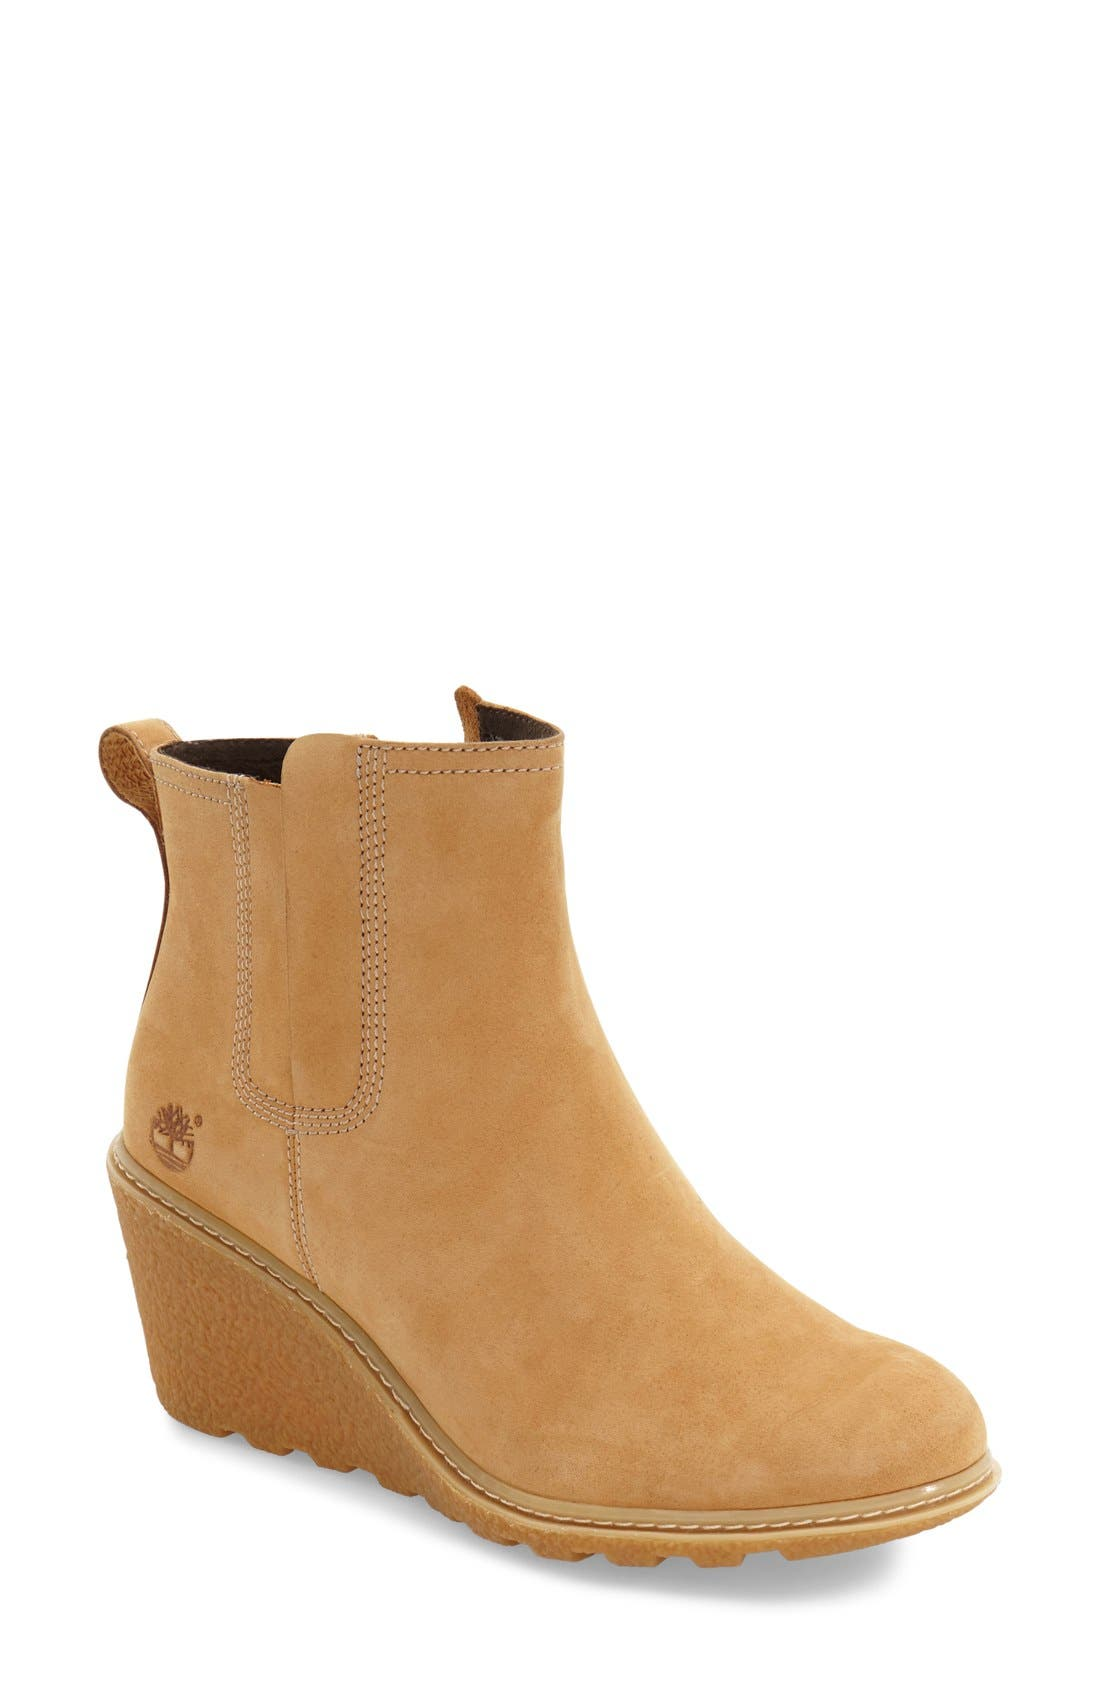 'Amston' Chelsea Wedge Boot,                         Main,                         color, Wheat Nubuck Leather